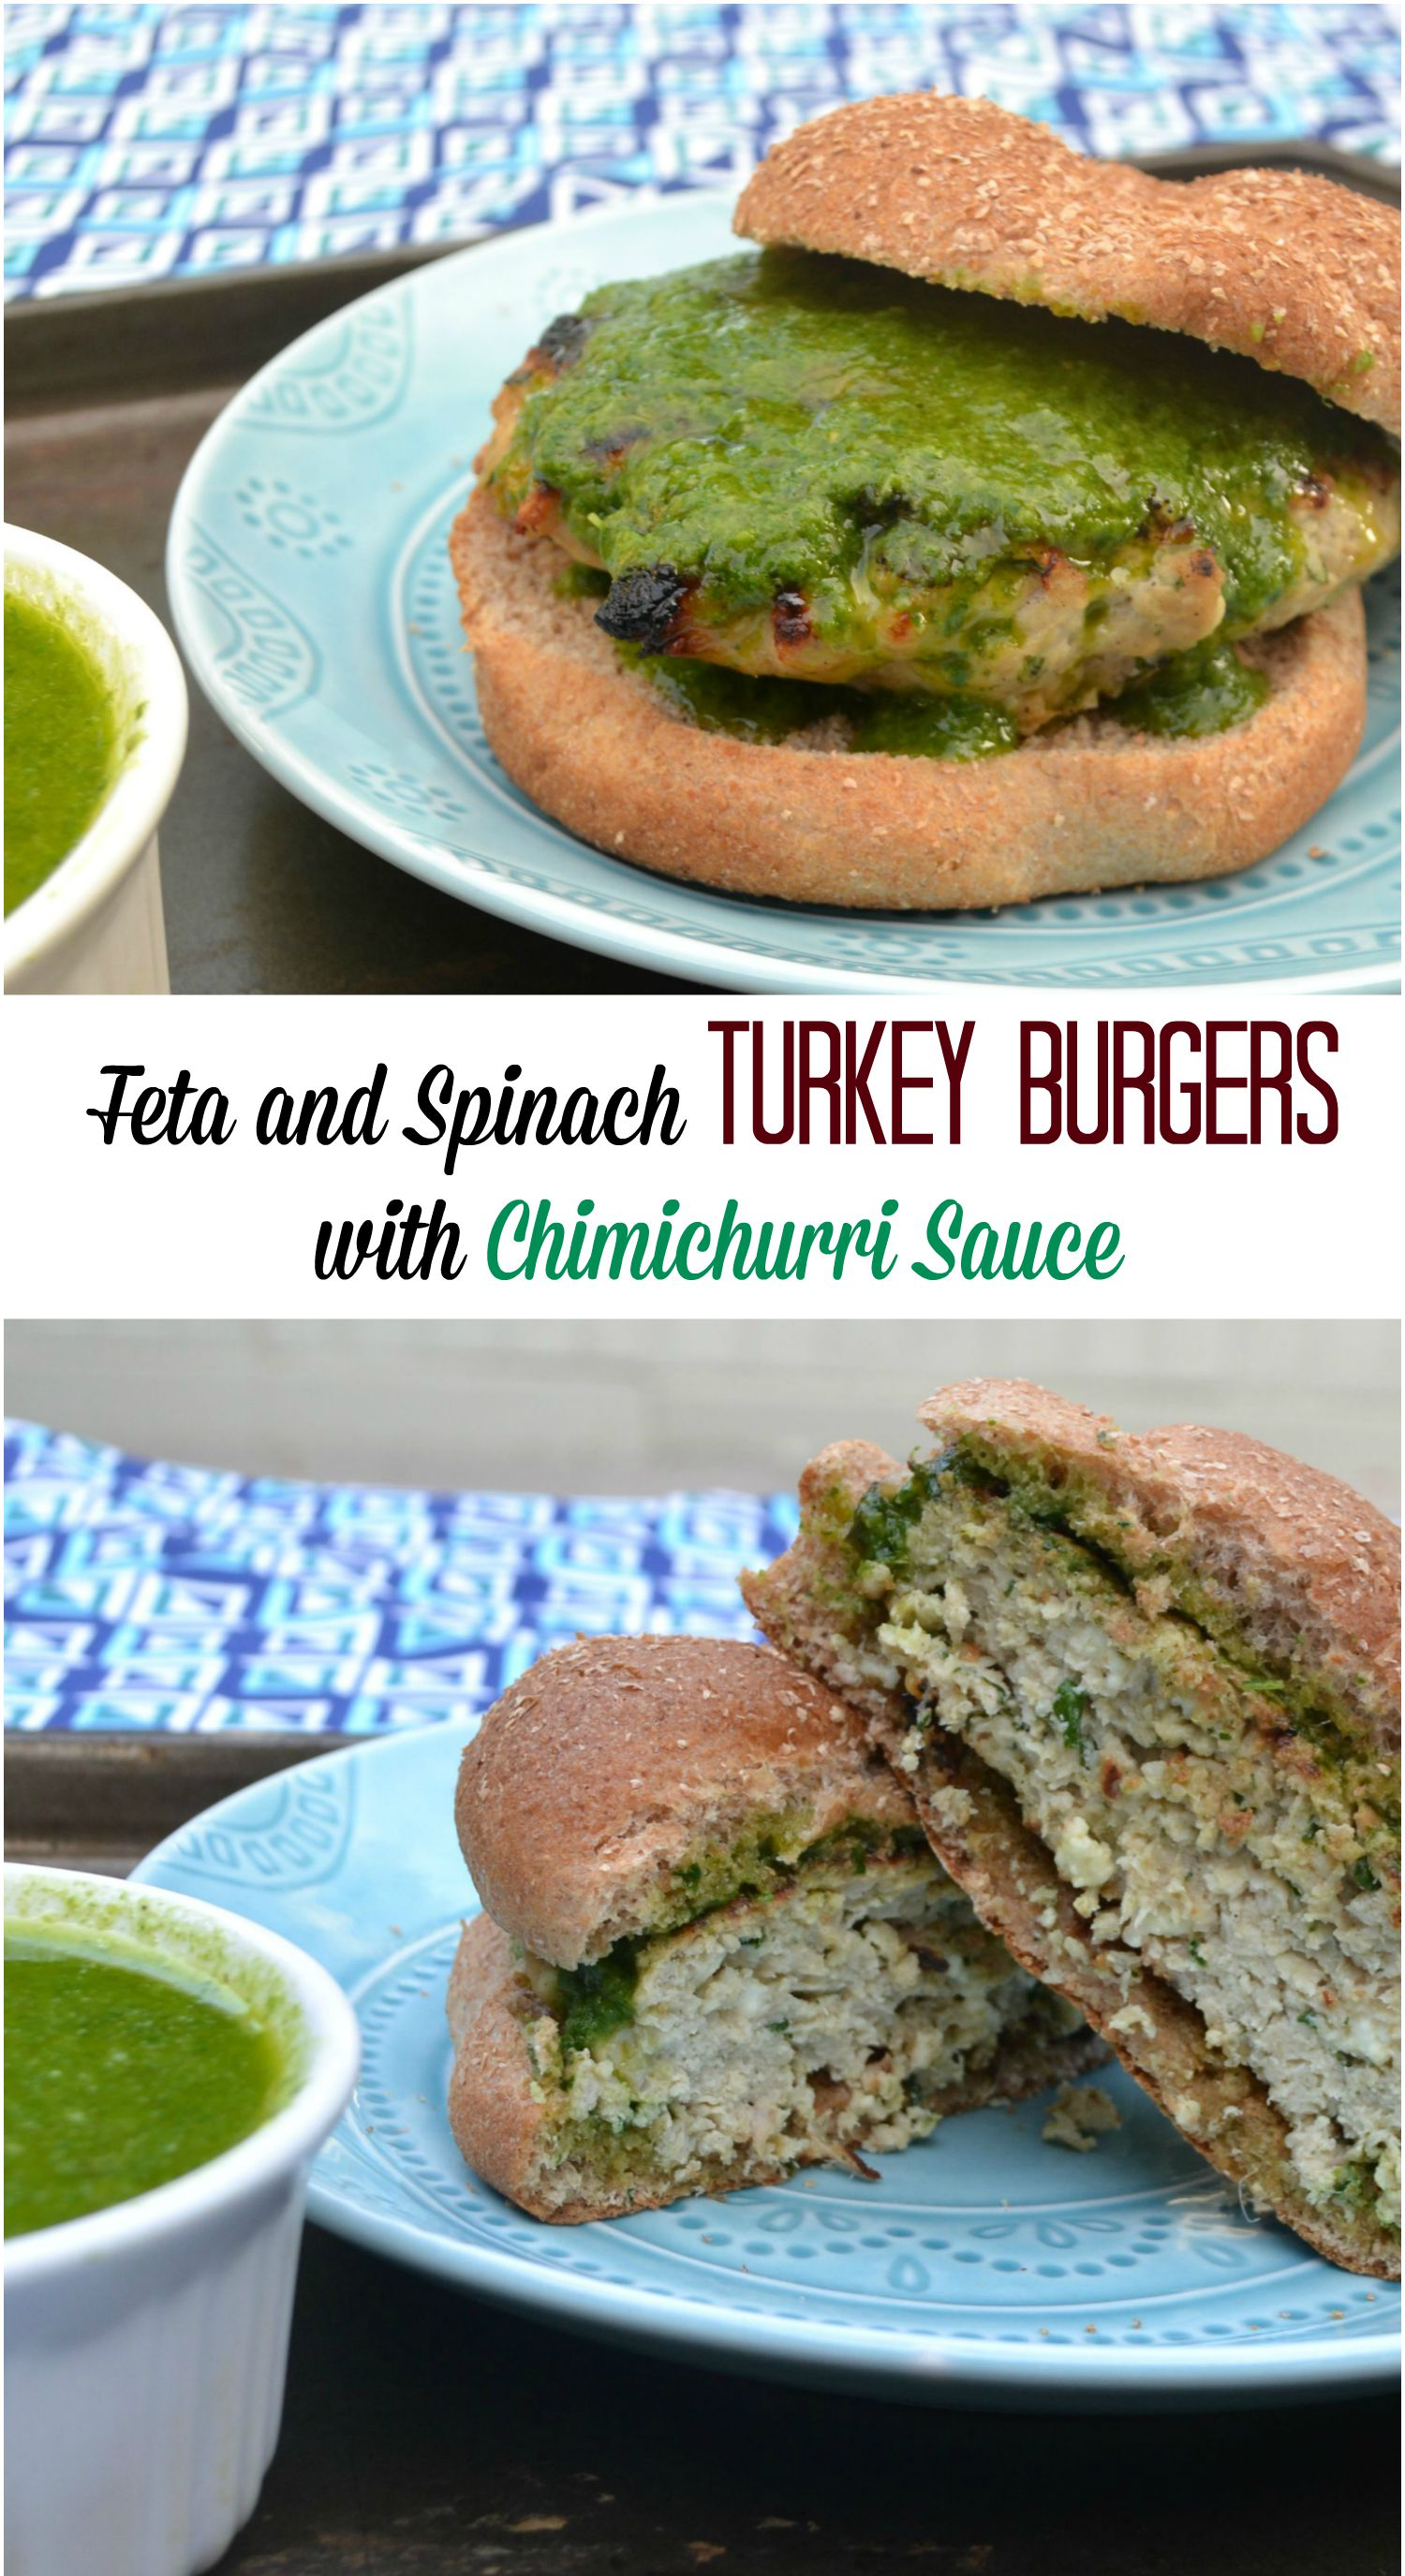 Feta and Spinach Turkey Burgers with Chimichurri Sauce